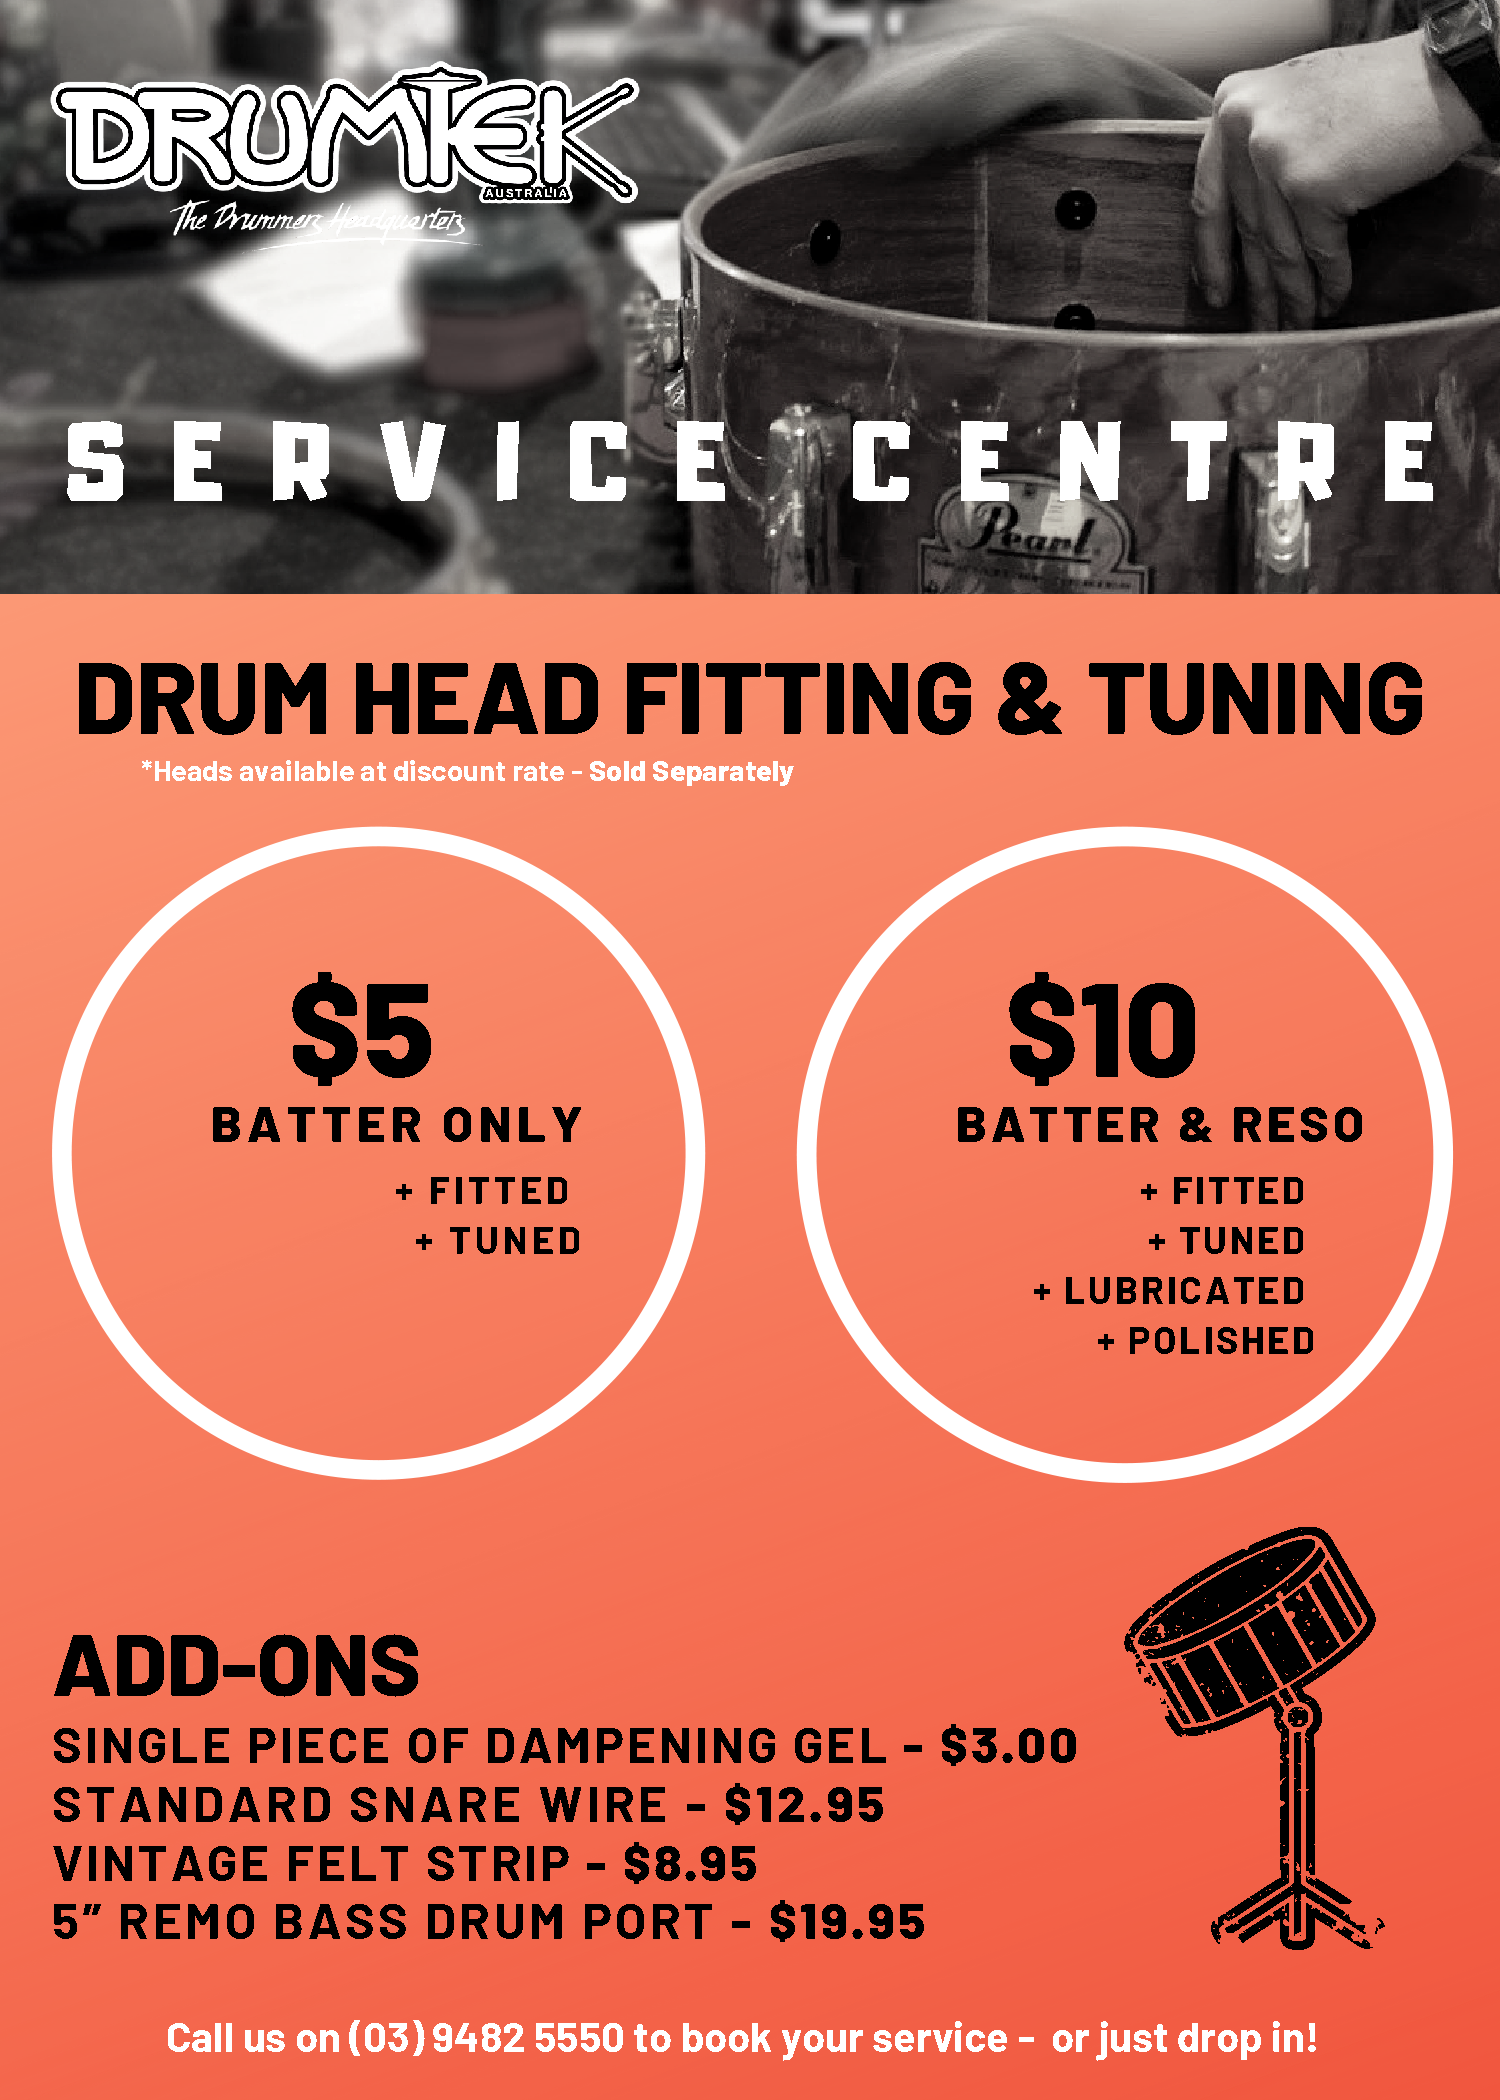 drumtek-service-centre-pricing.png